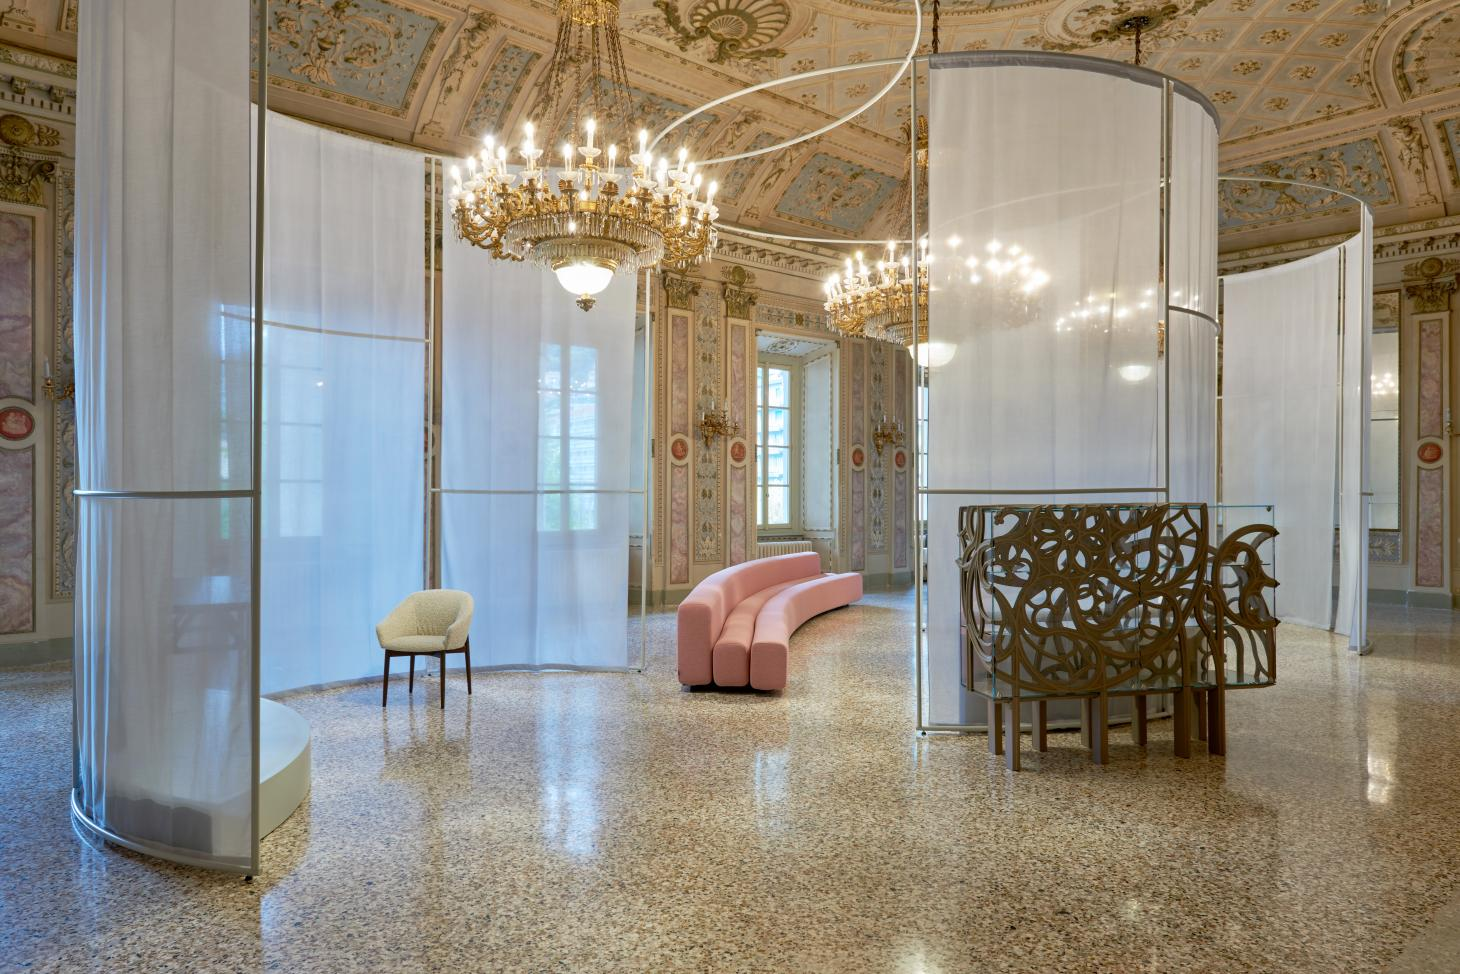 Interior of 18th century palazzo in Como with displays if pink Pierre Paulin sofa and white chair as part of Lake Como Design Festival displays